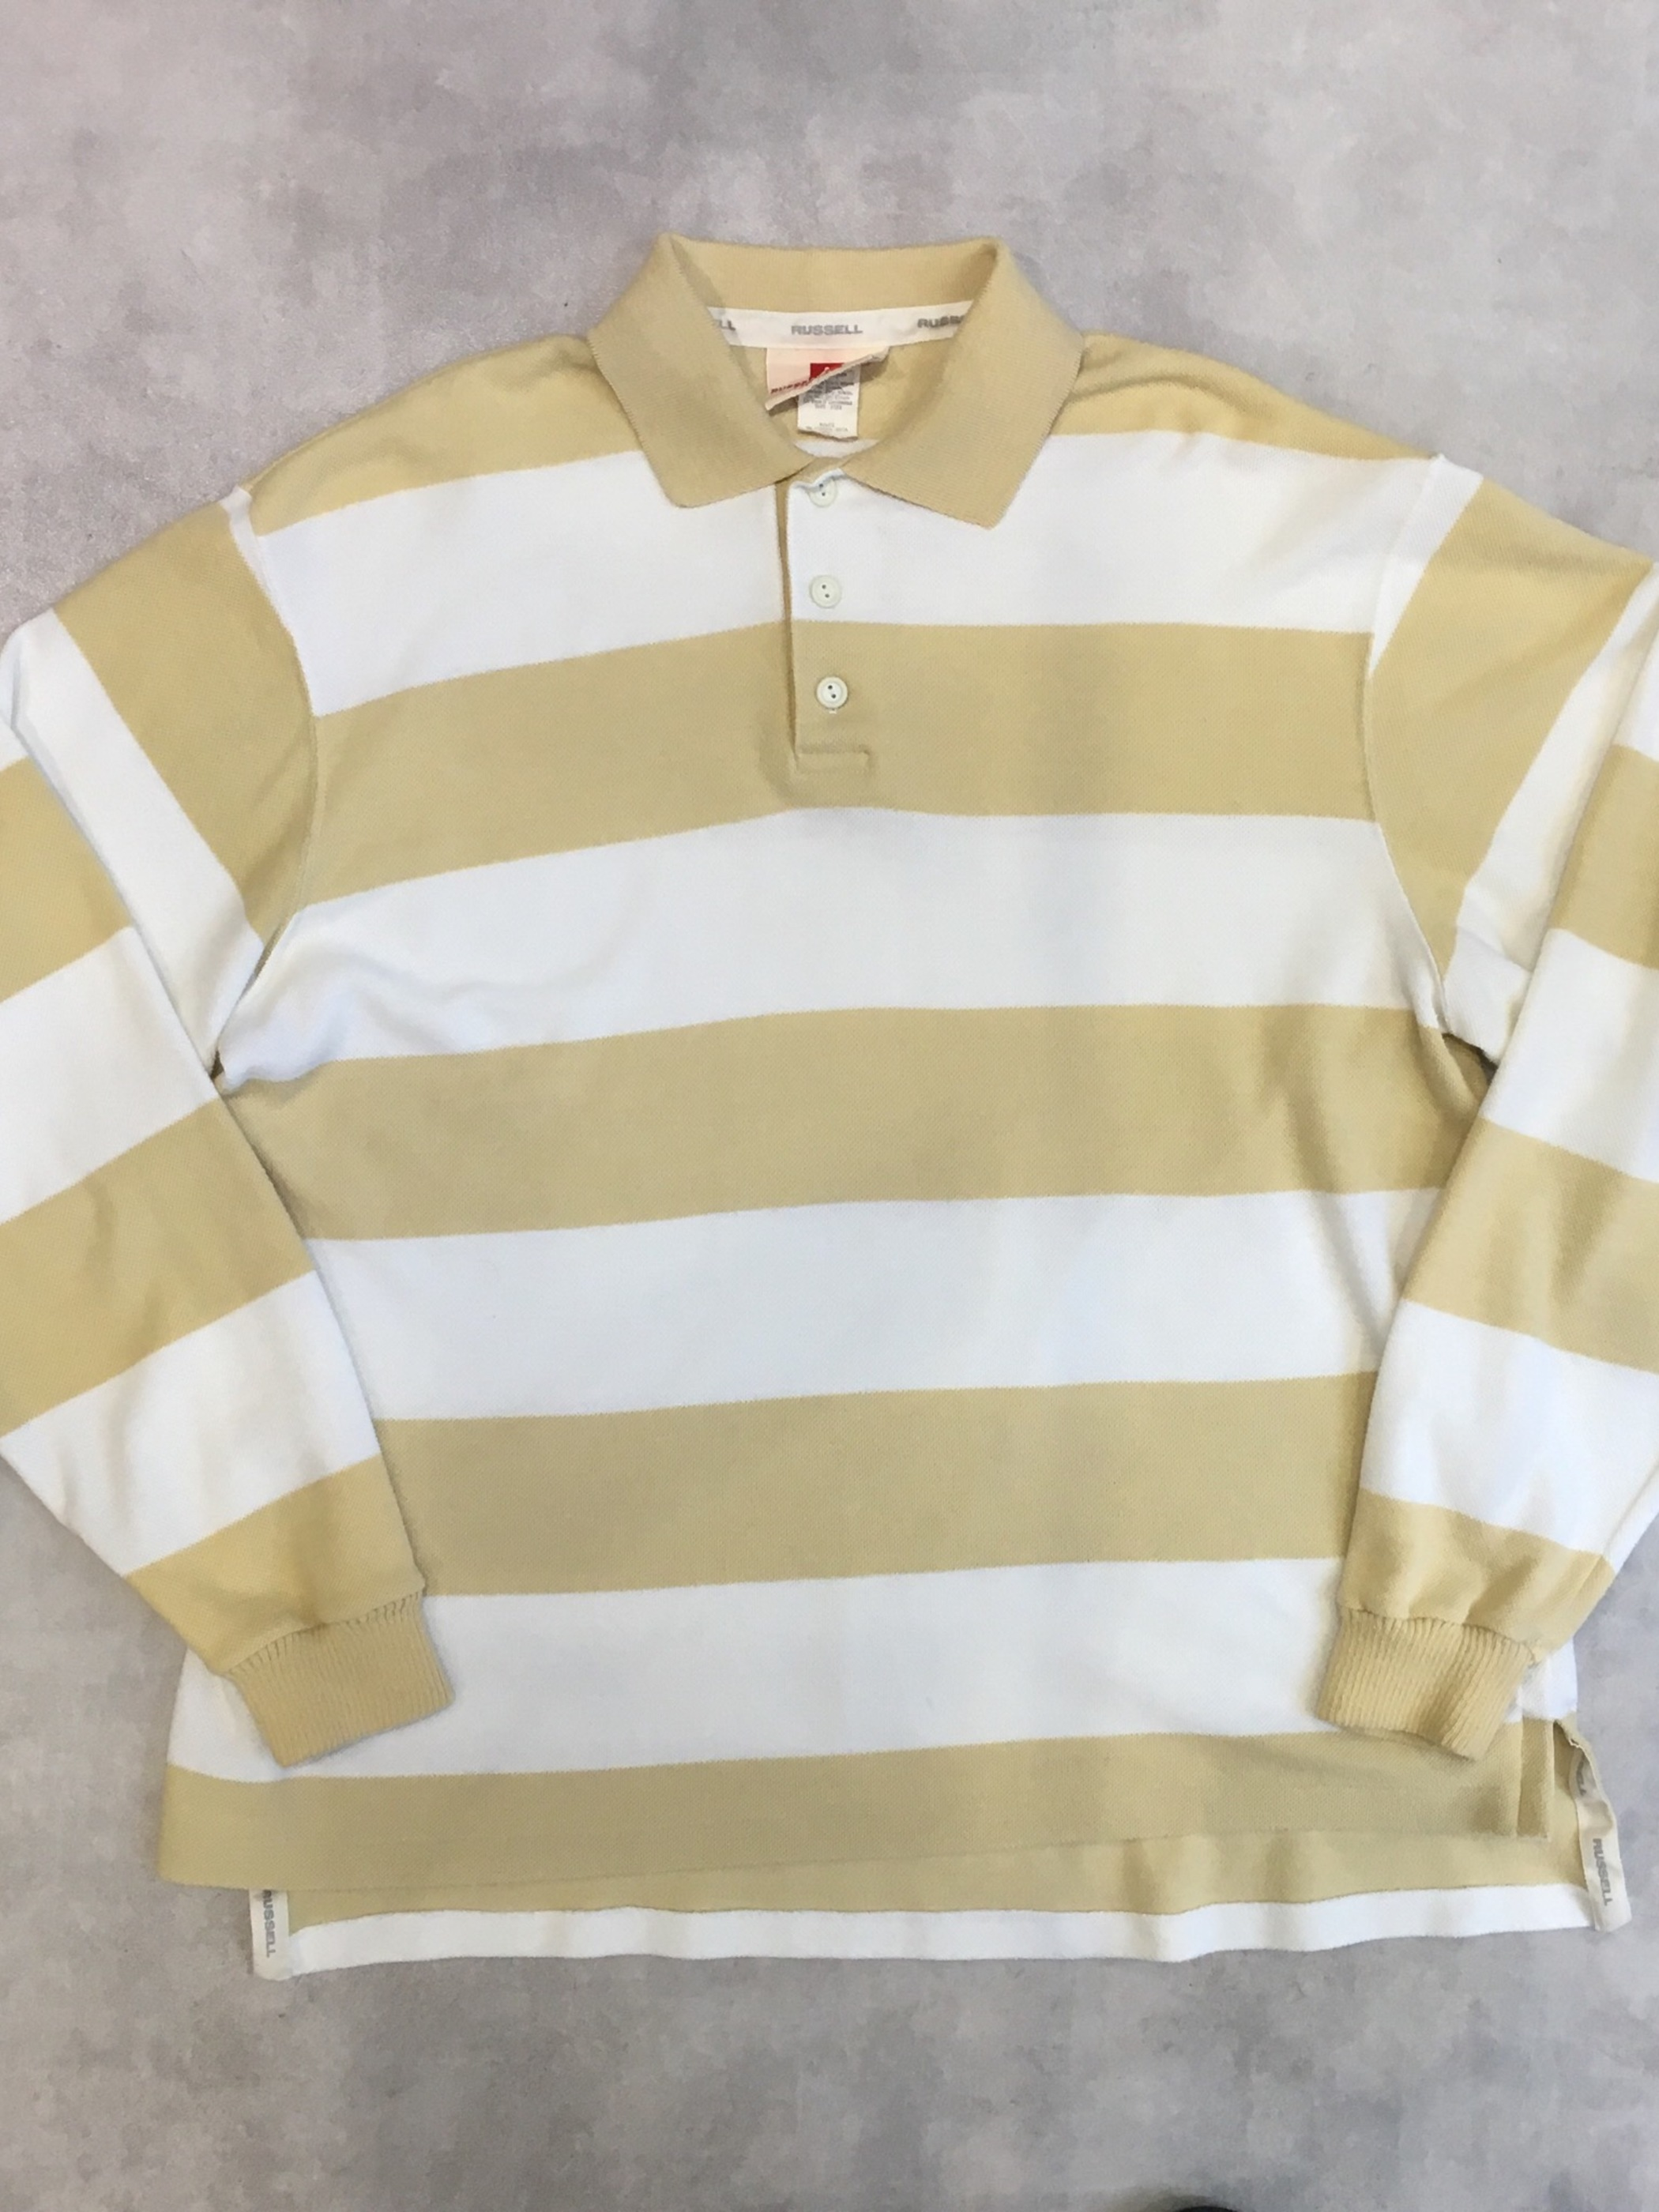 RUSSELL ATHLETIC L/S polo shirts